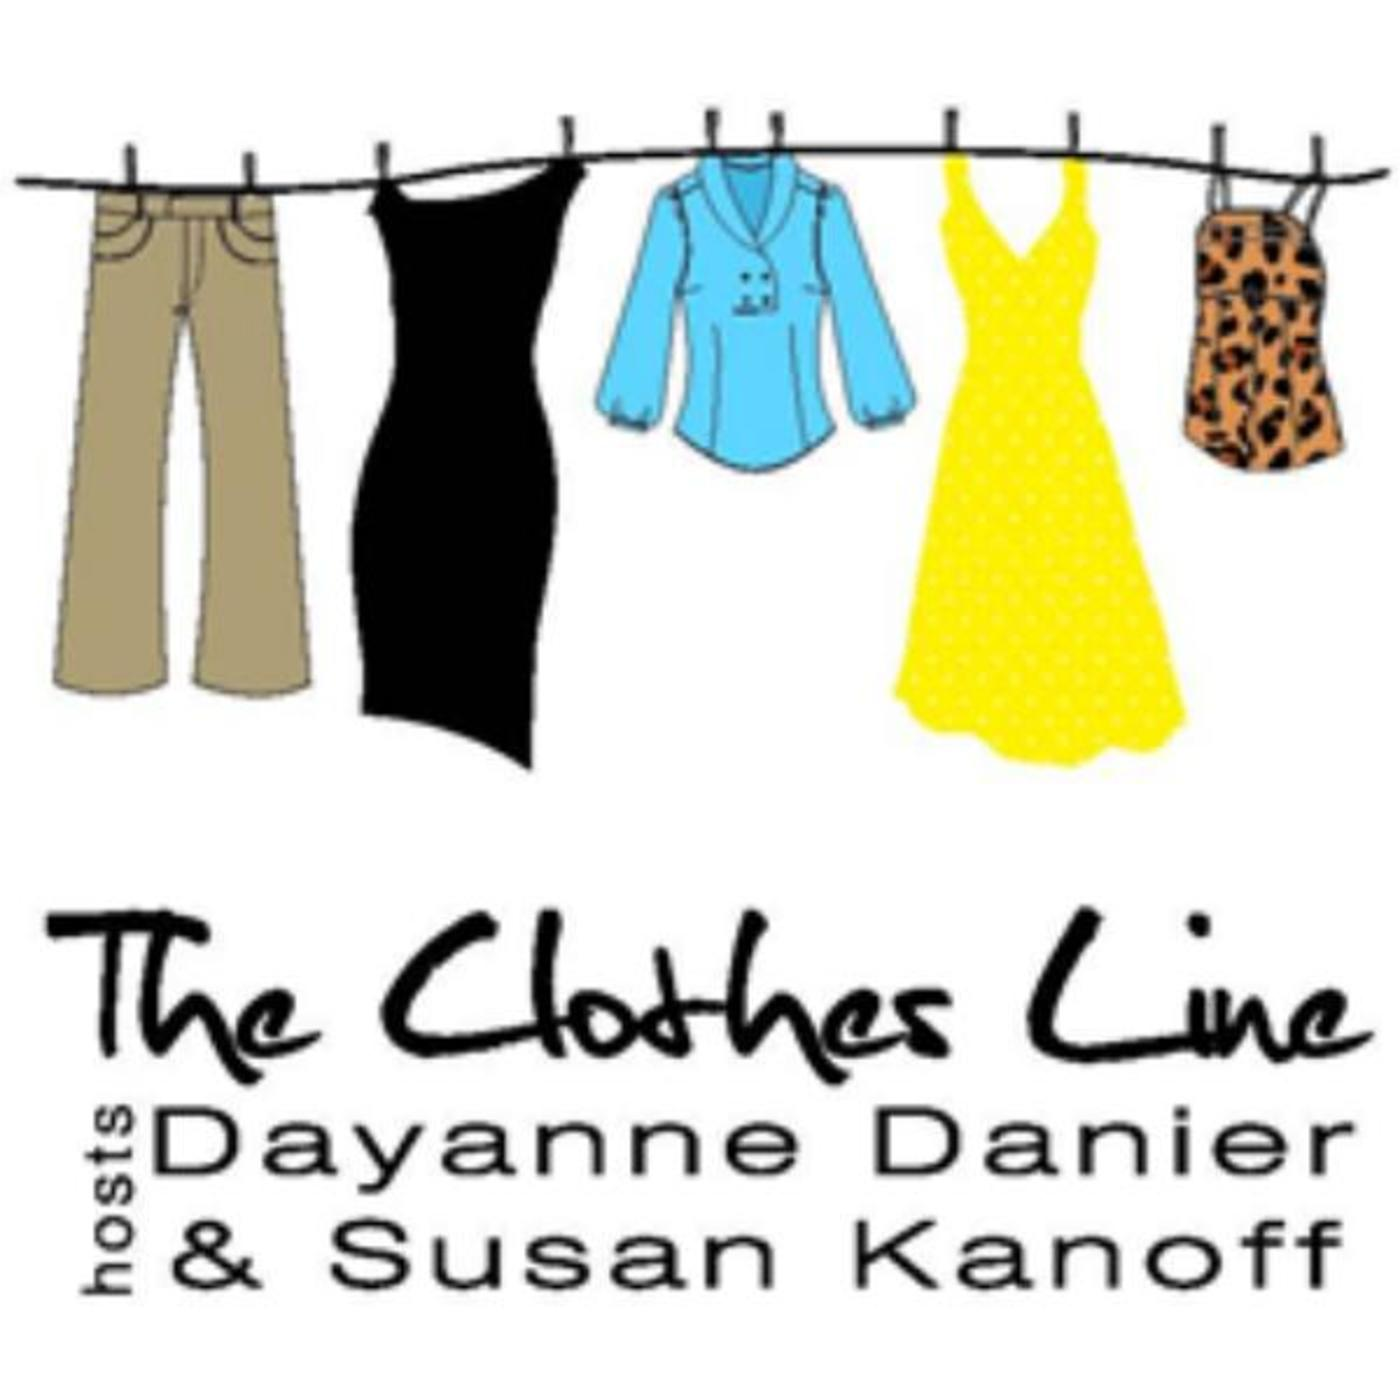 Susan and Dayanne: The Clothes-Line